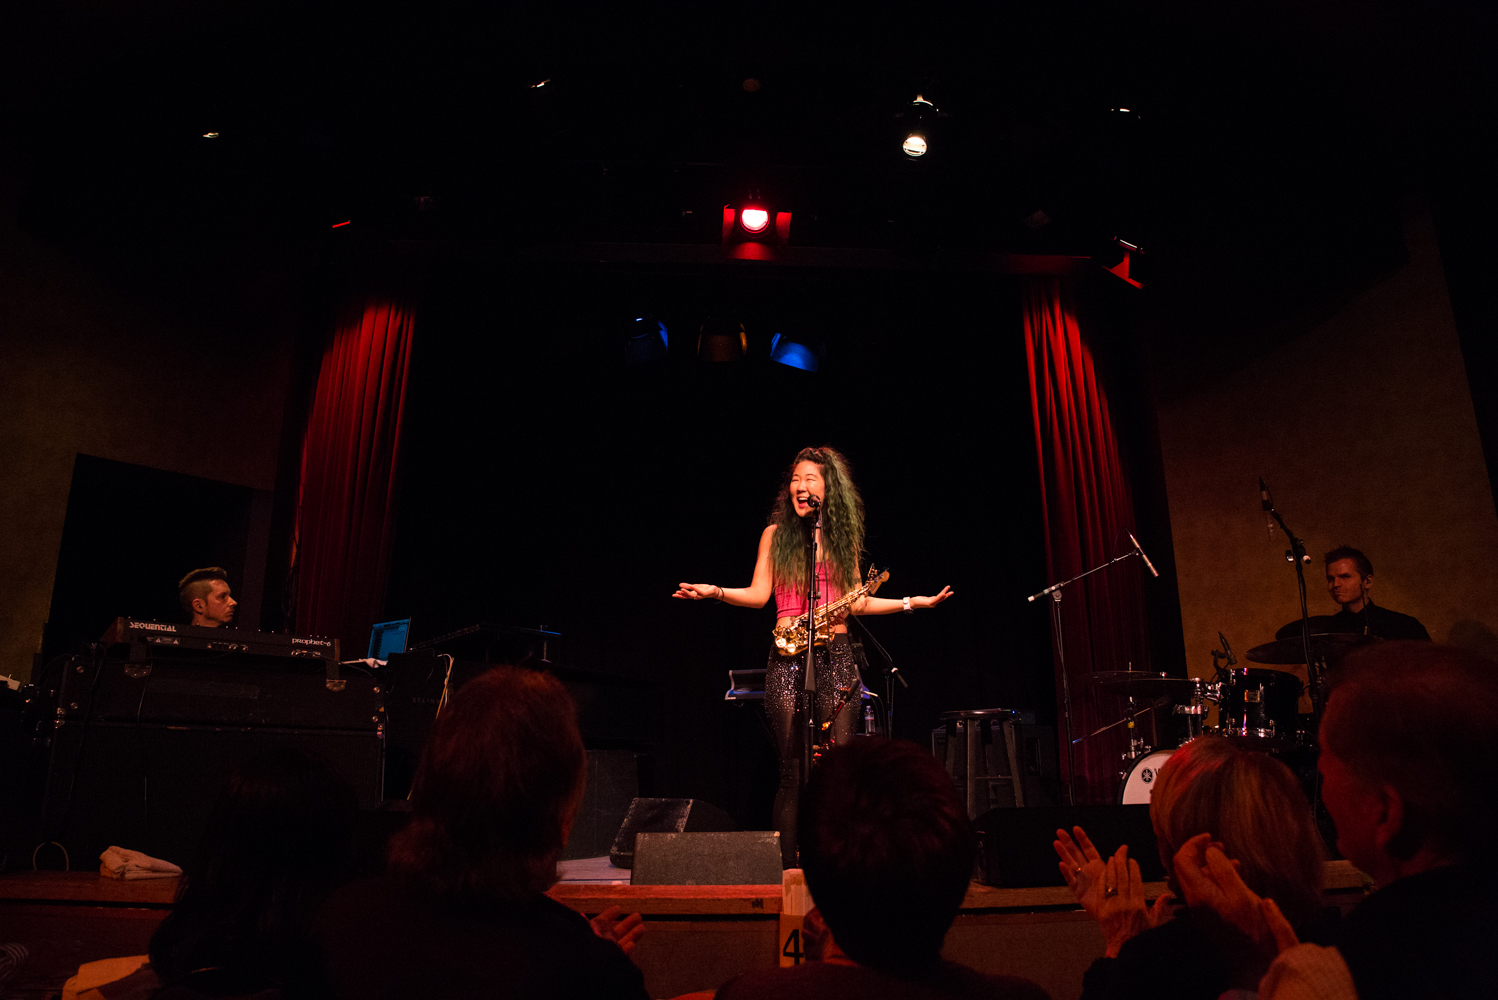 yoshis-oakland-music-show-grace-kelly-saxophone.jpg